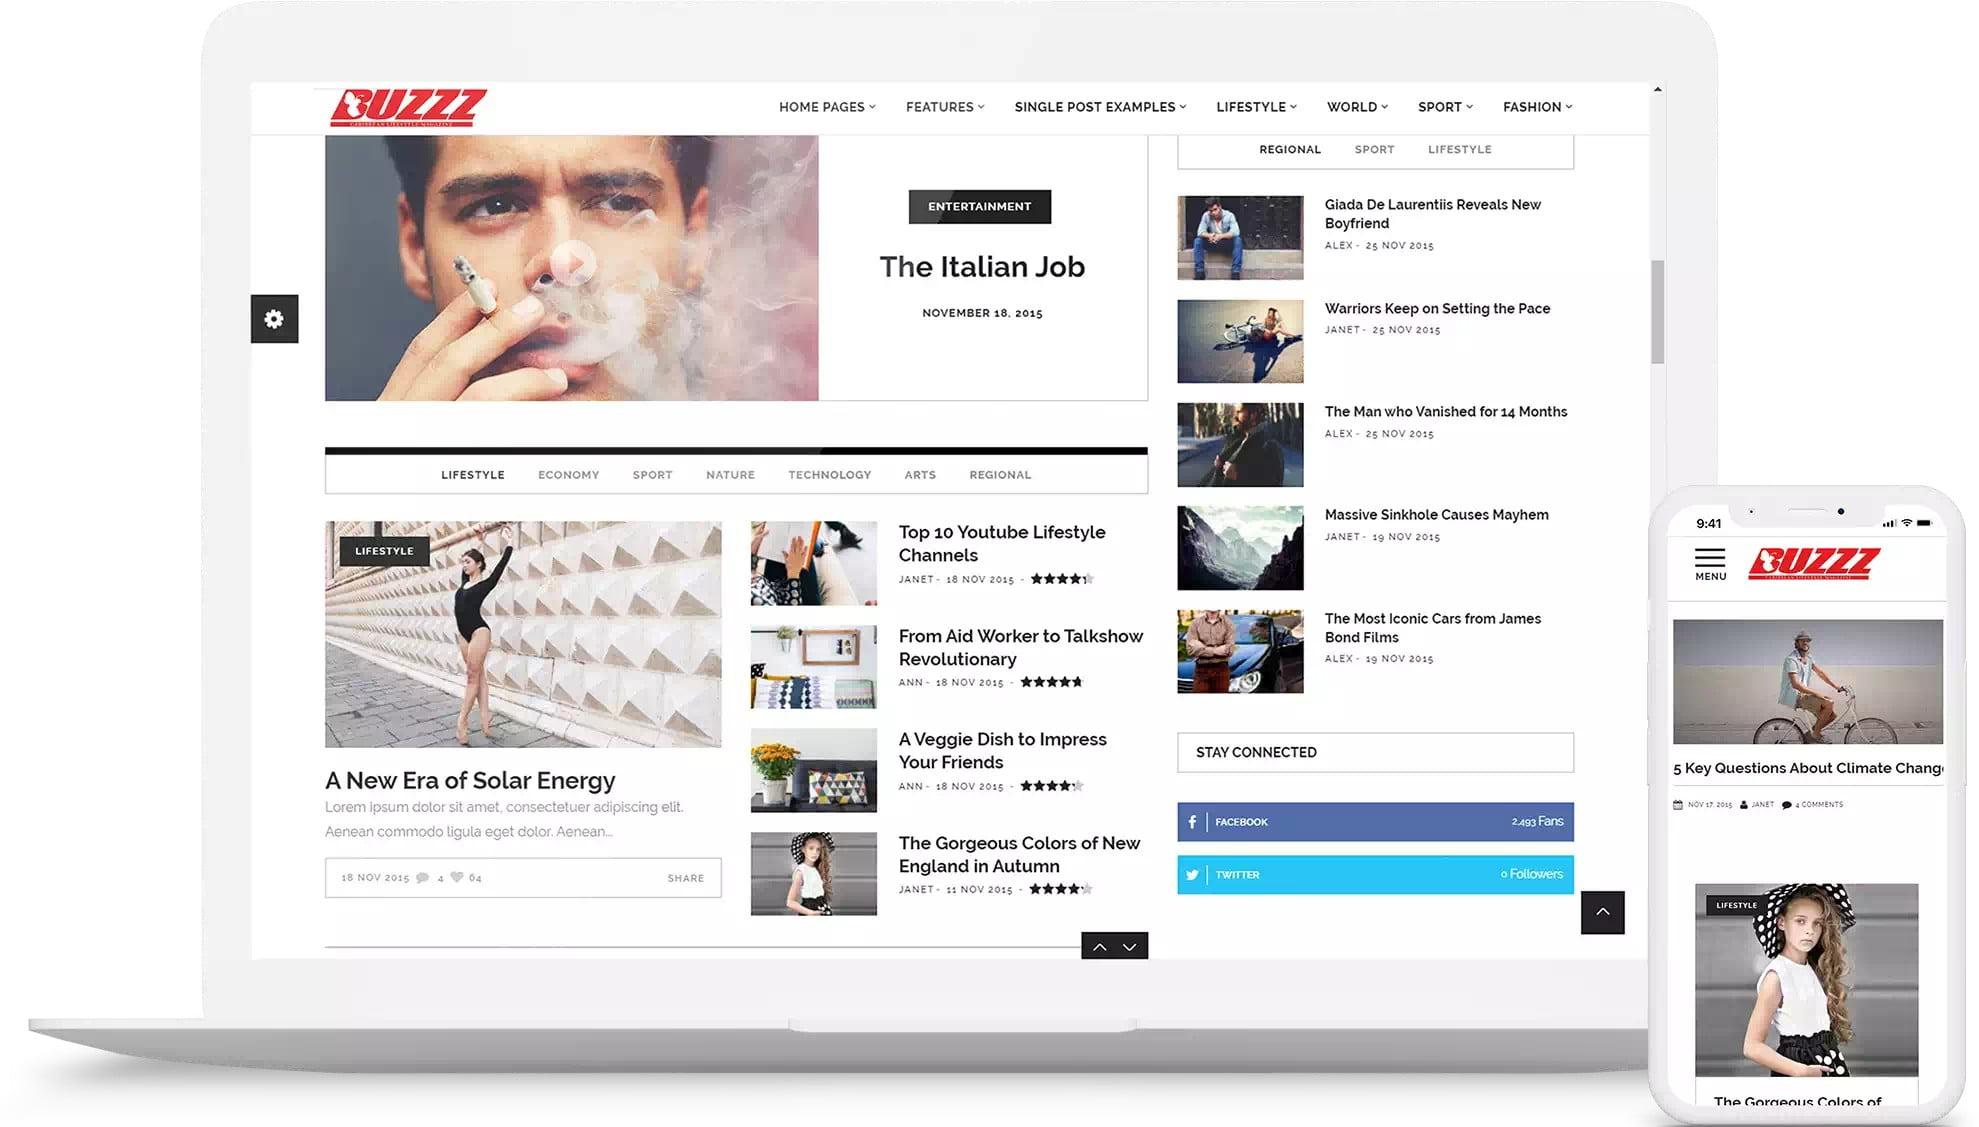 Mockup of Buzzz's old website theme